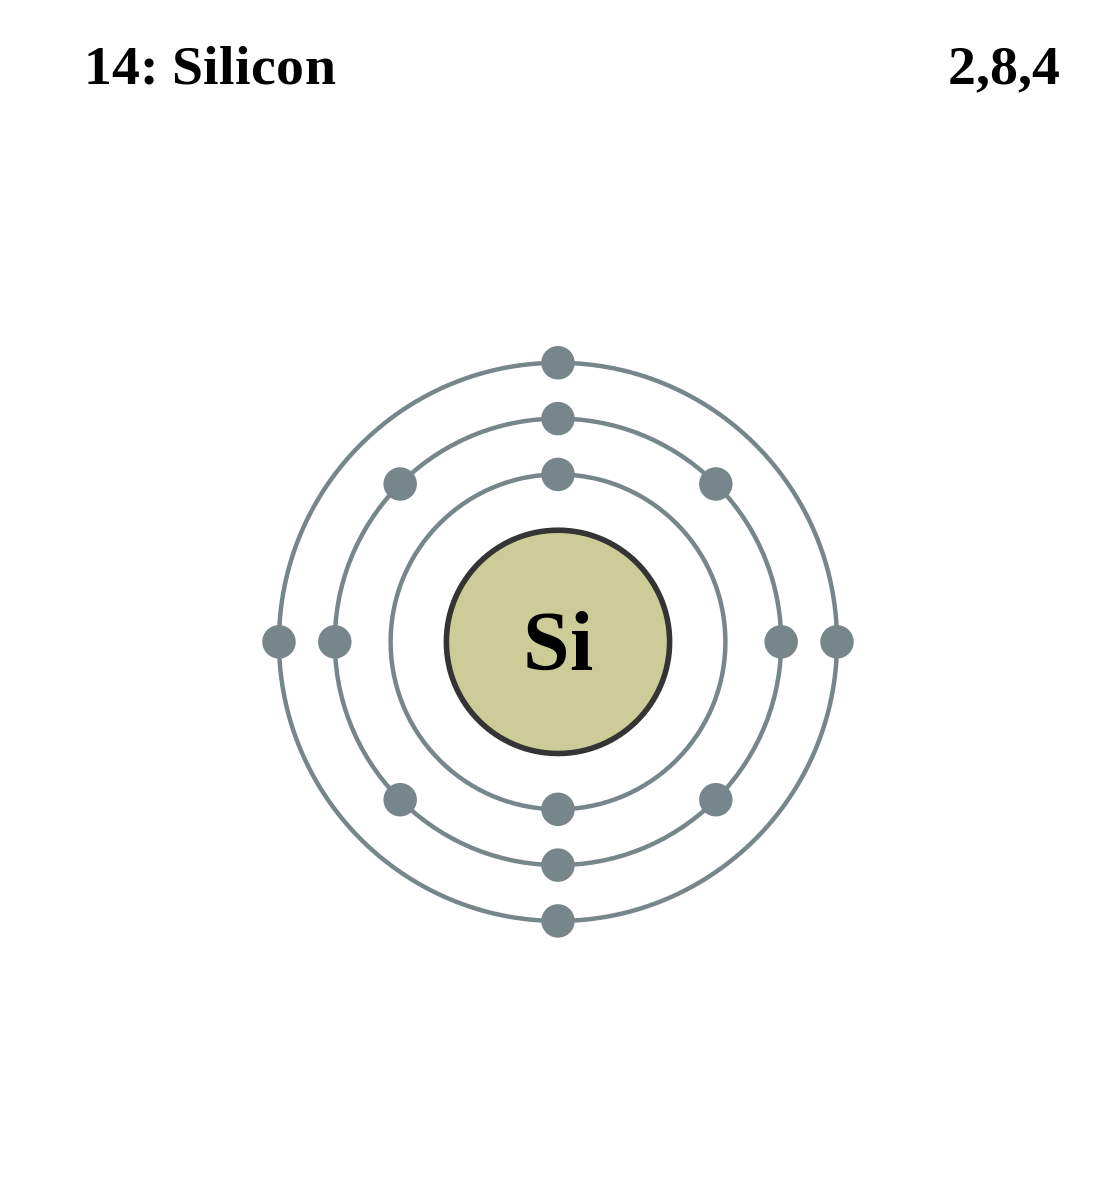 Teach Astronomy Silicon Versus Carbon